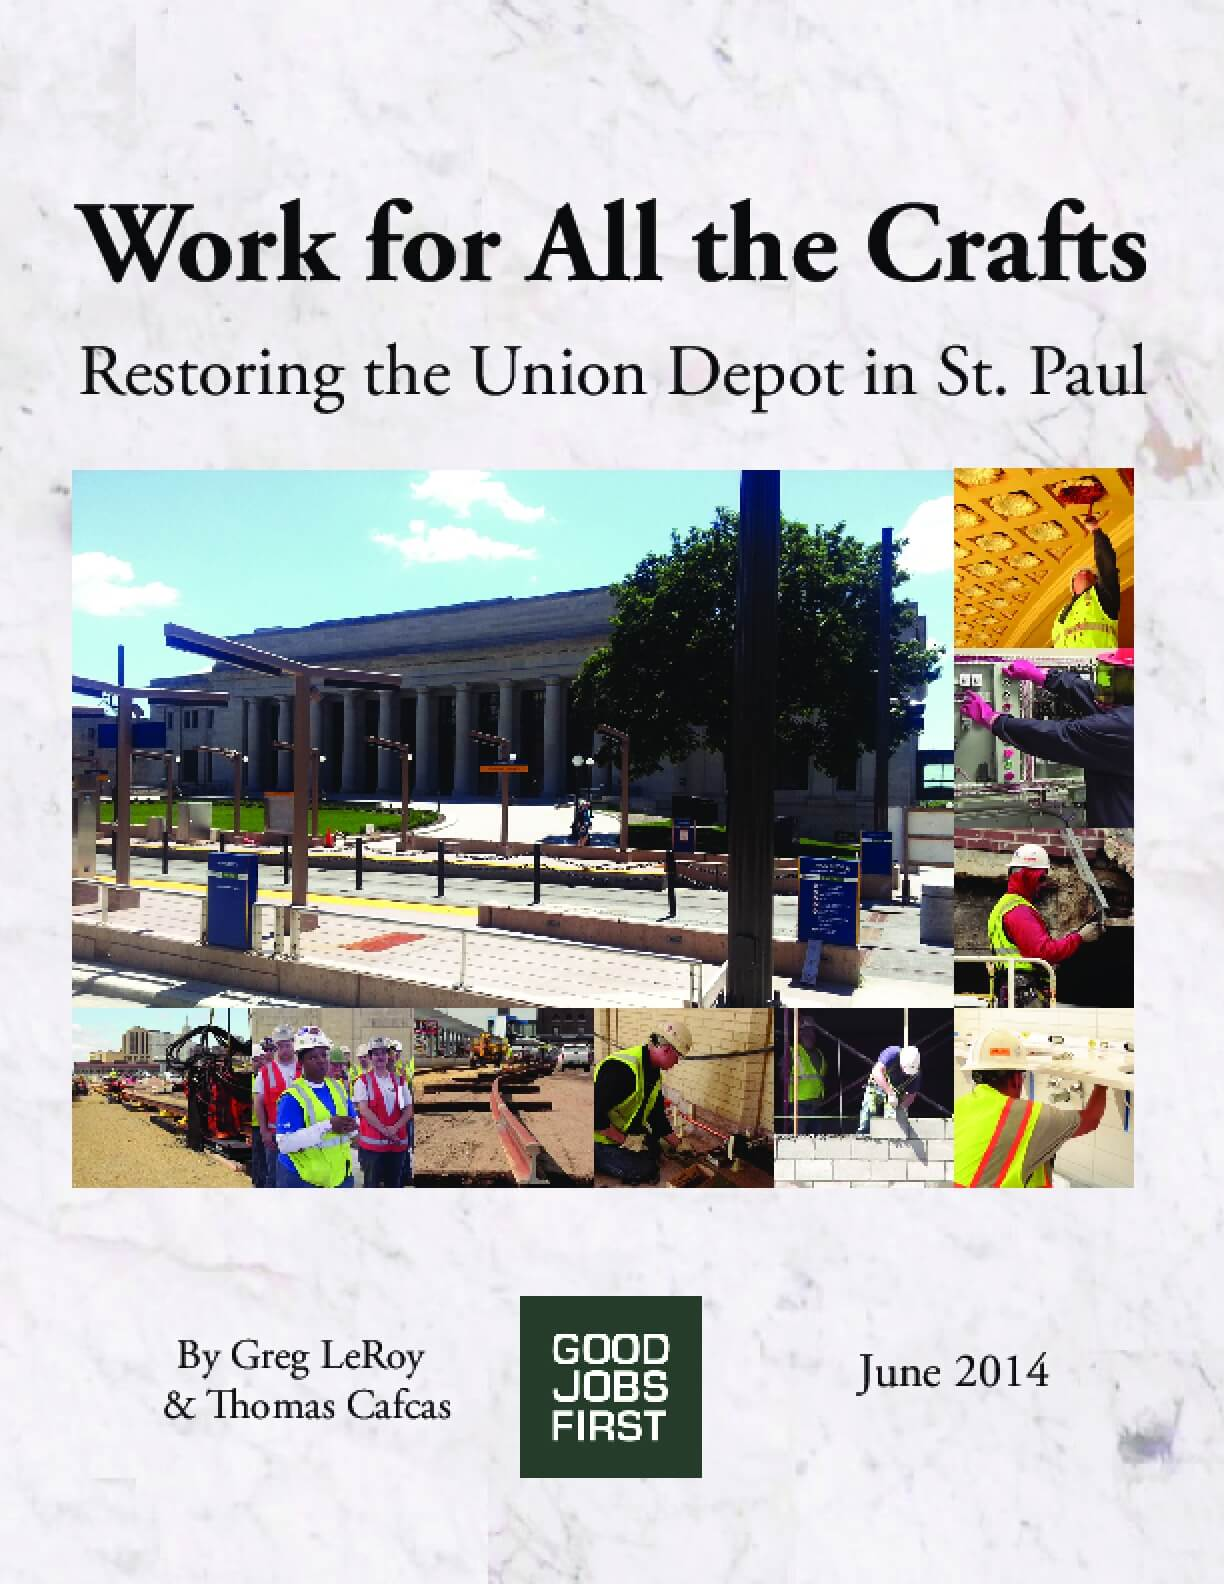 Work for All the Crafts: Restoring the Union Depot in St. Paul